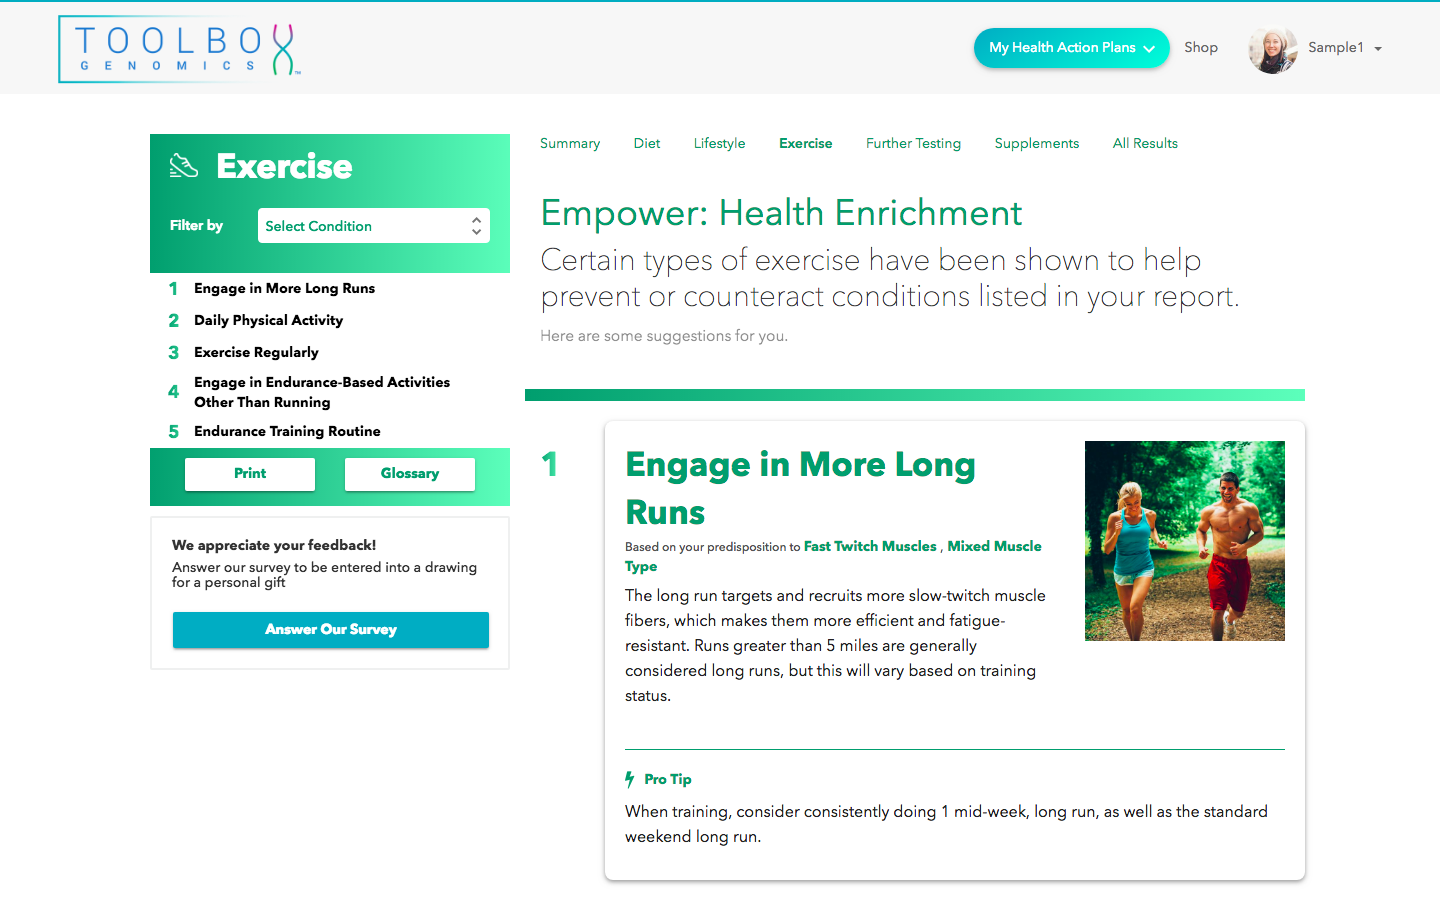 Empower genome app by Toolbox Genomics in Sequencing.com's DNA App Store provides a DNA tailored fitness action plan and is compatible with DNA data from all genetic tests including AncestryDNA, 23andMe, FTDNA, My Heritage, Genes for Good (GFG), Helix, All Of Us, Dante Labs, Illumina, Living DNA, 23andMe sequencing and genome sequencing